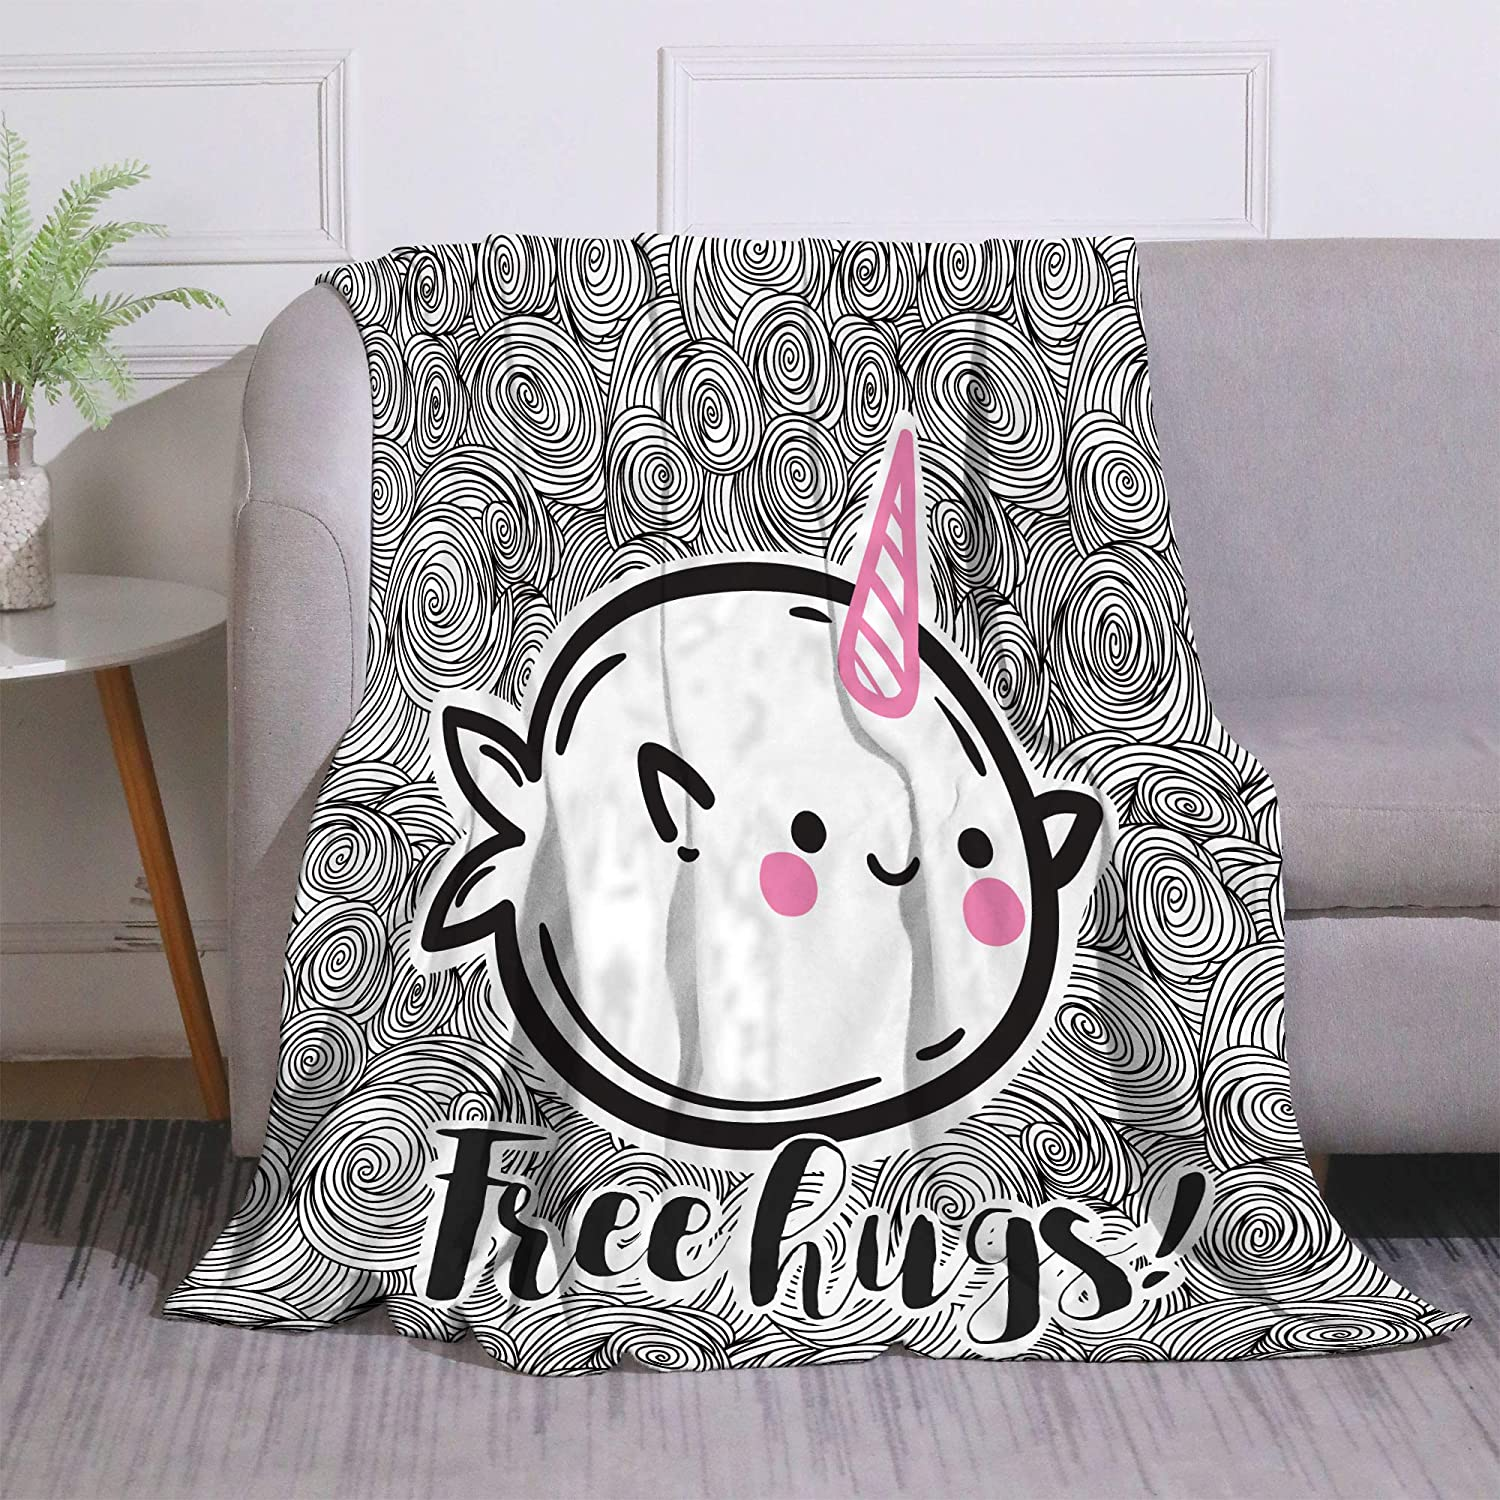 Yunine Cute Narwhal Bed 2021 model 4 years warranty Blanket for Funny Unicorn Child Fis Kids